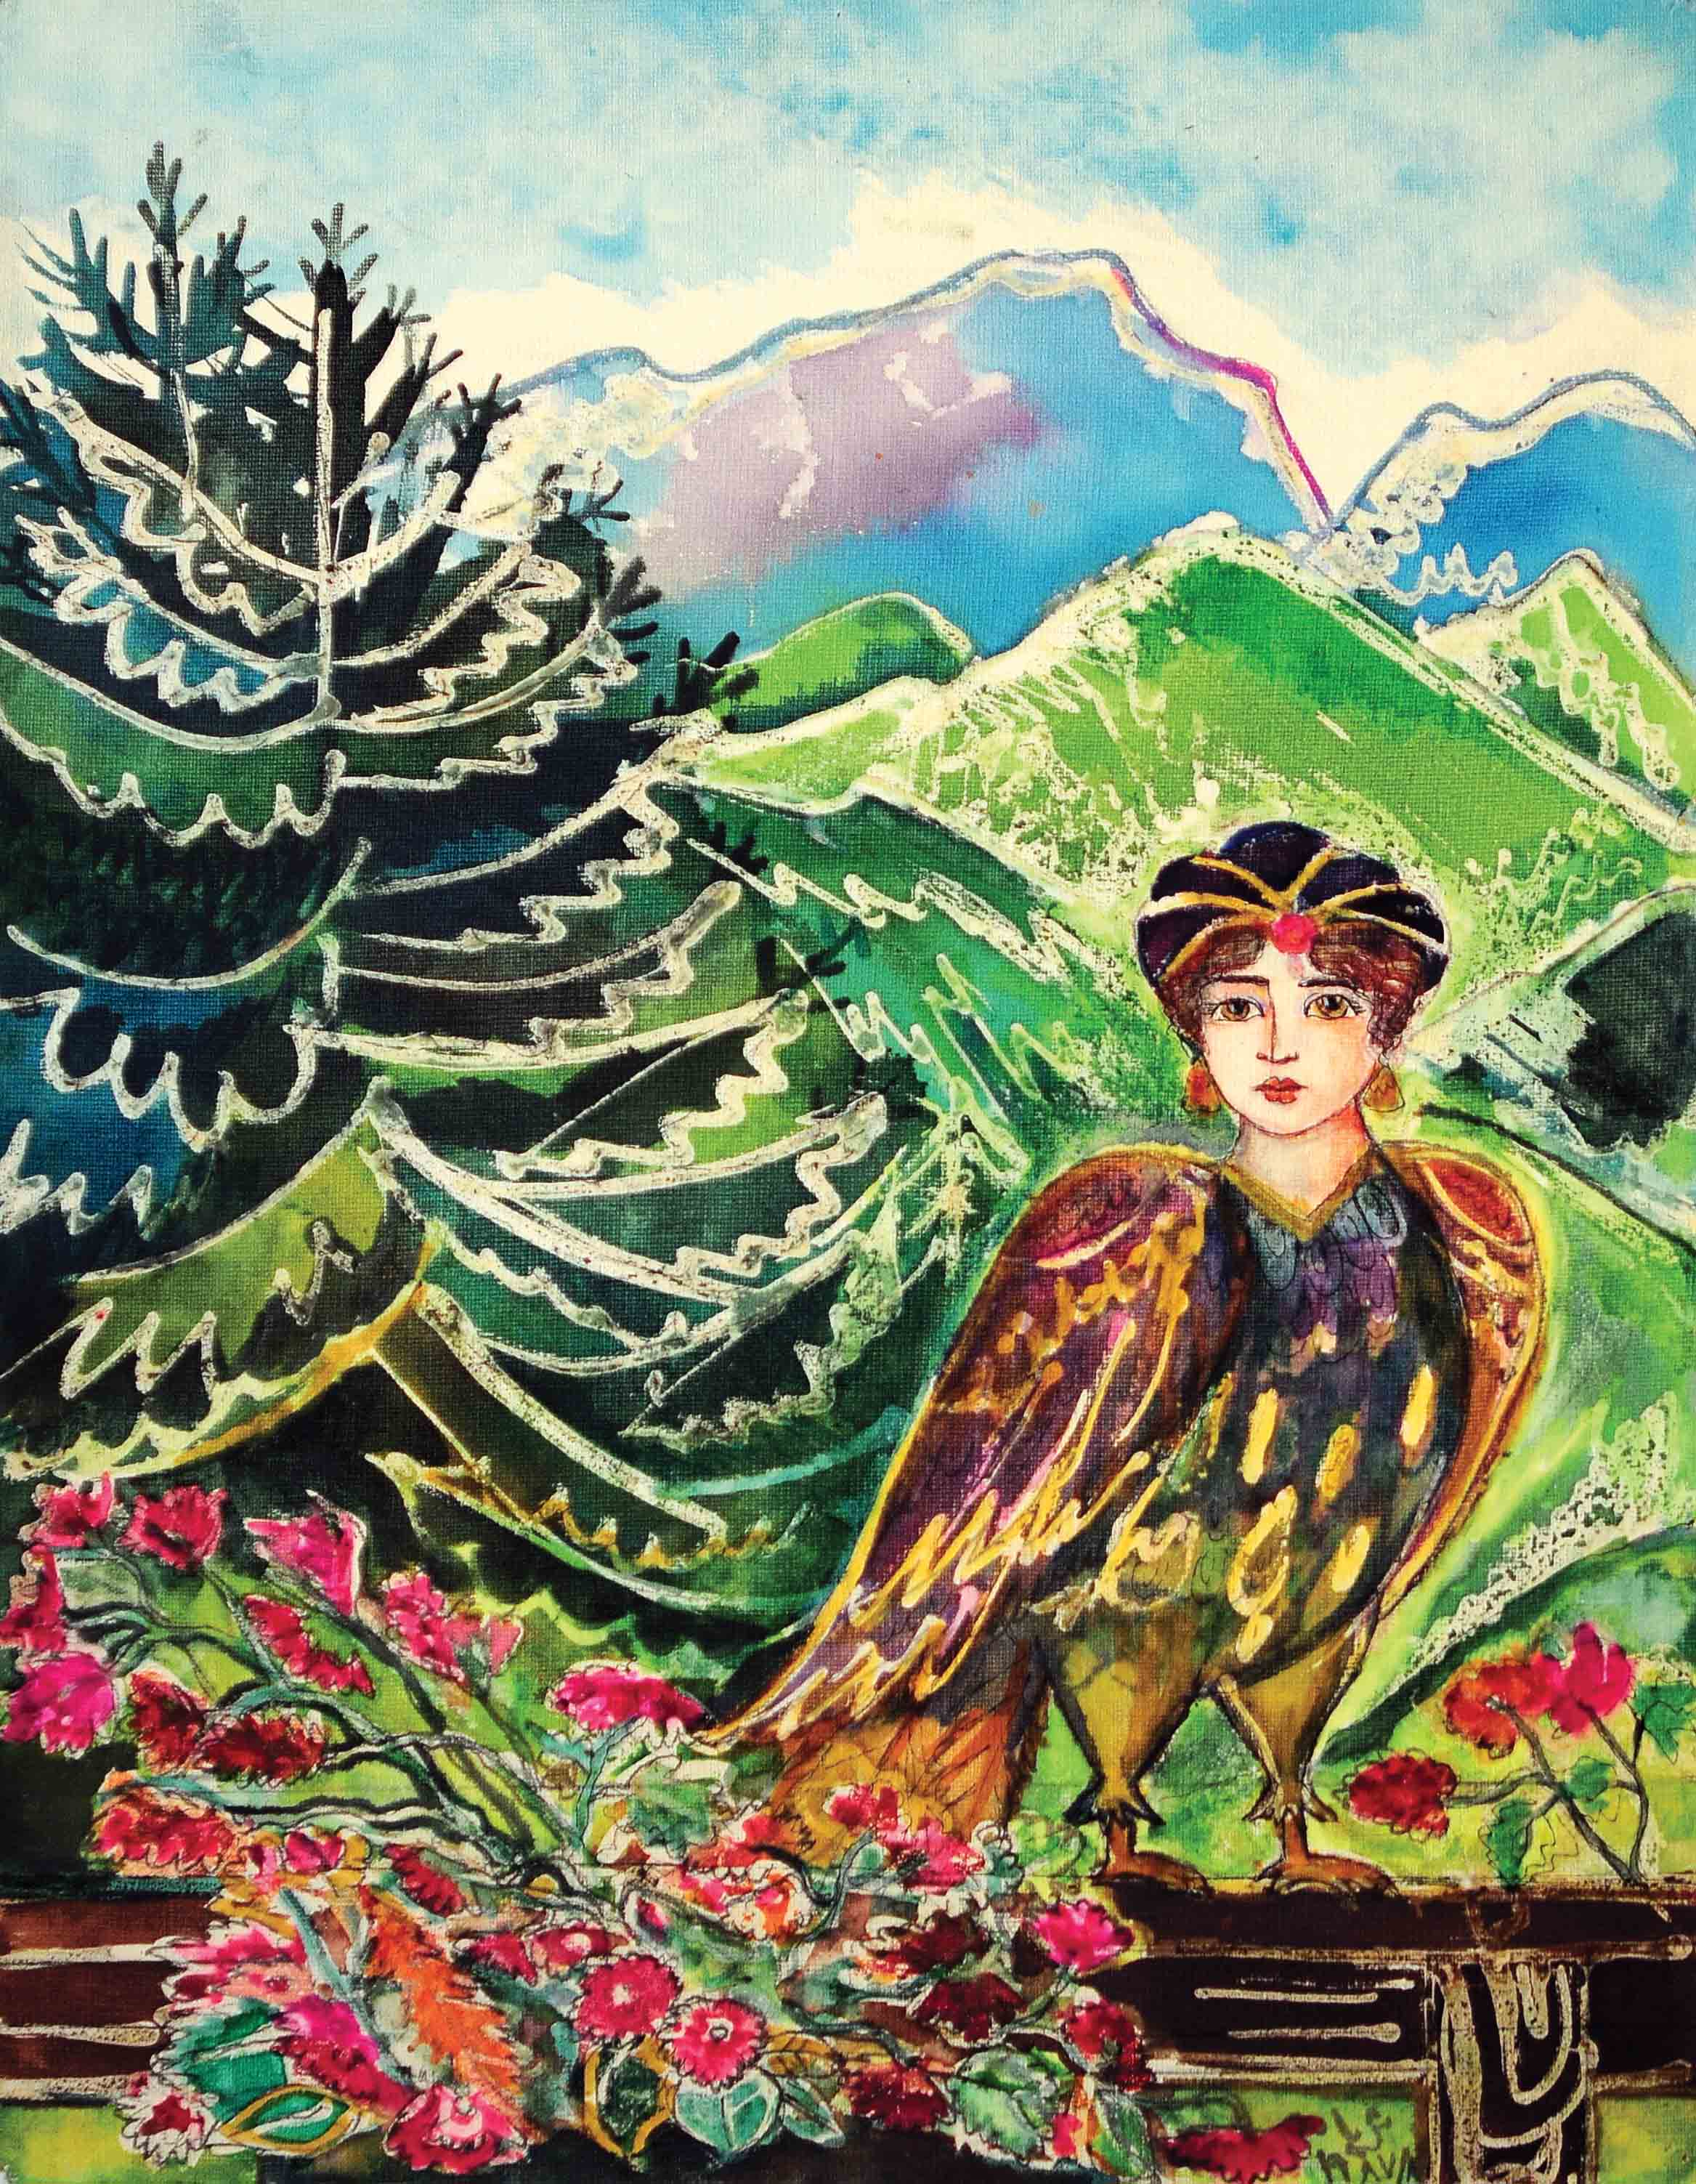 Bird from the Orient, 1987